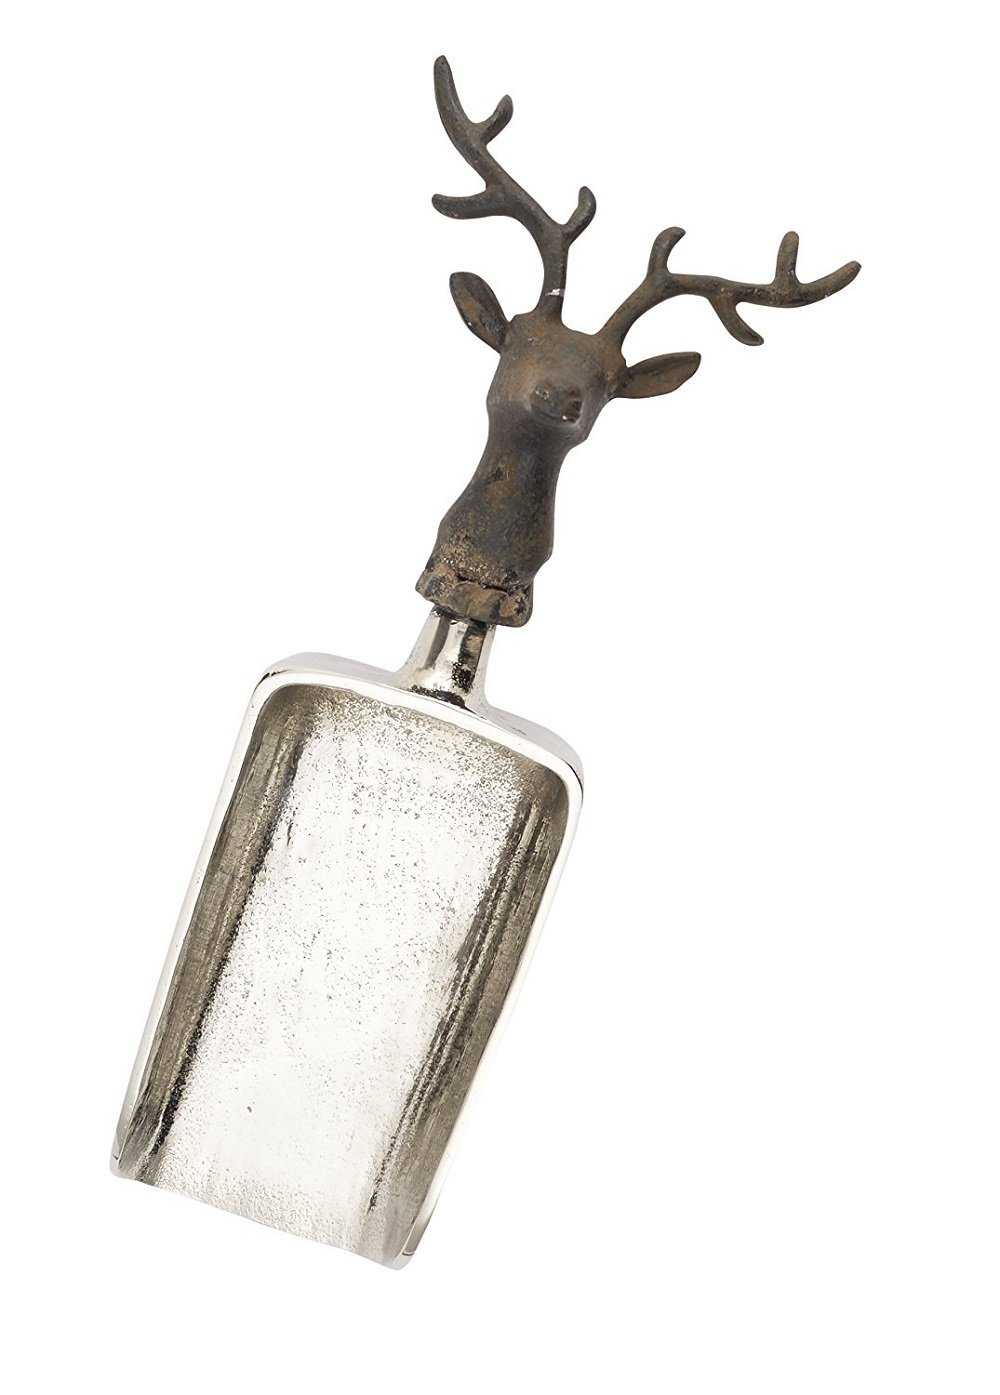 Rustic Style Reindeer Holiday Ice Scoop